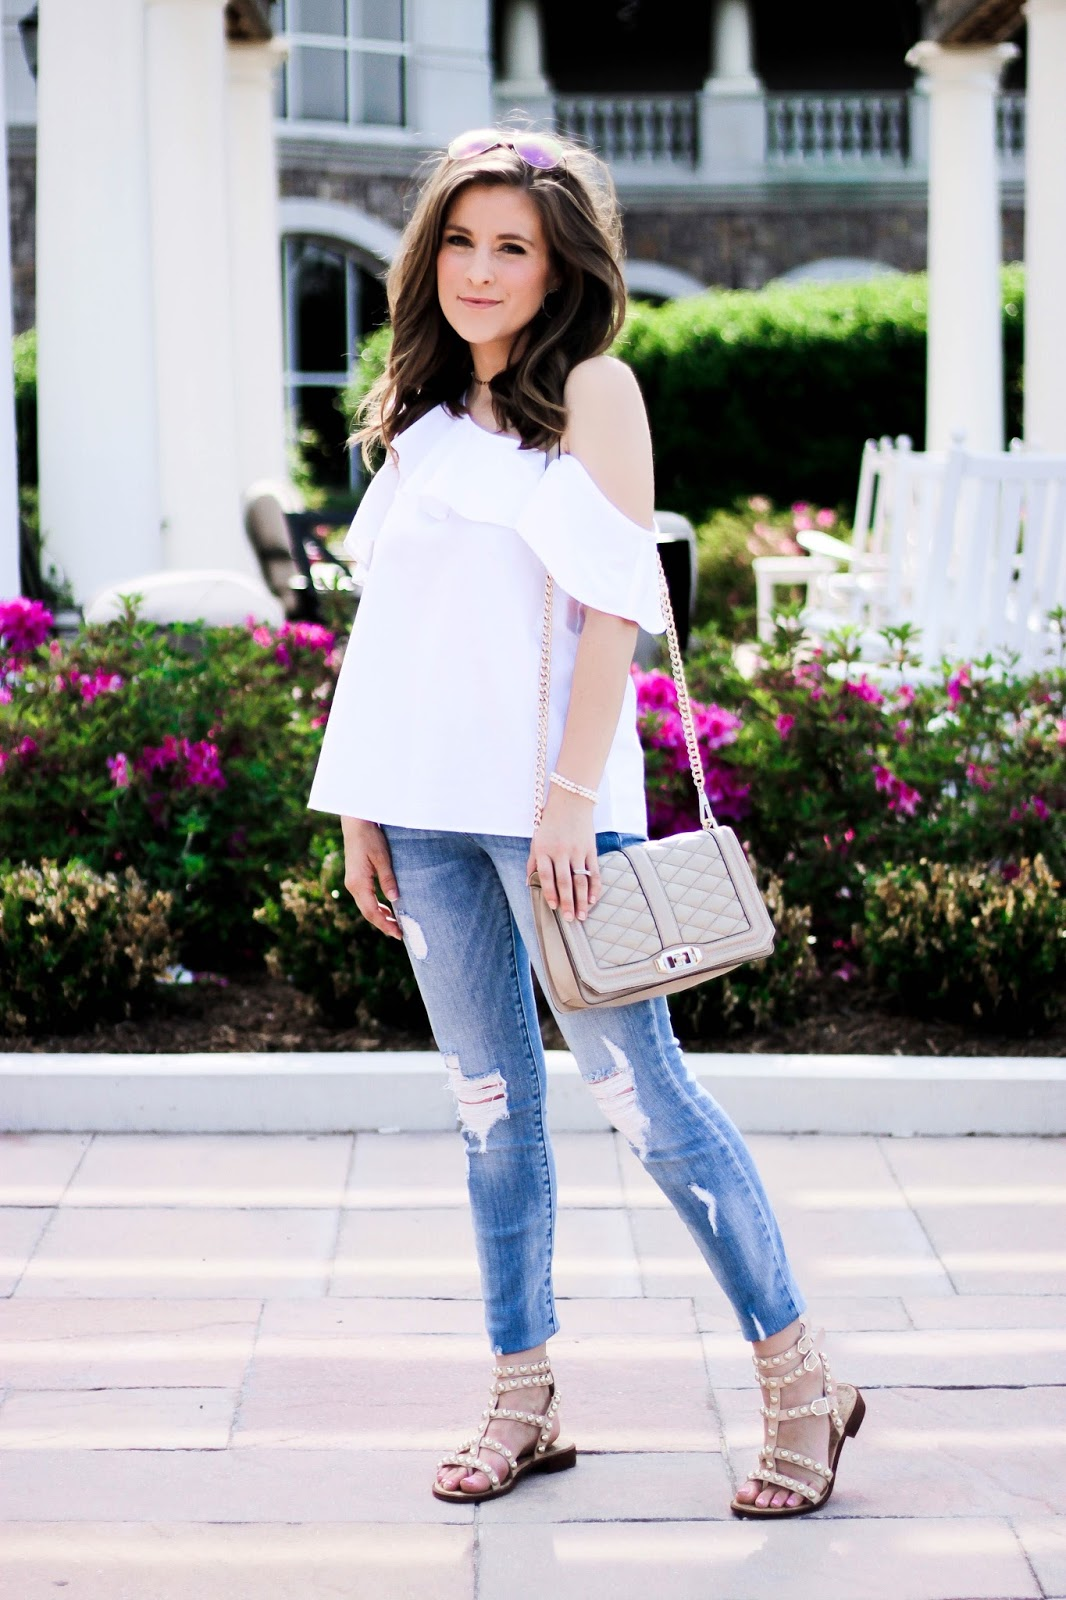 c04a6a49263 madewell one shoulder top (c/o) || similar jeans || paved circle earrings  || similar stud sandals || bag {last year, try this one!}